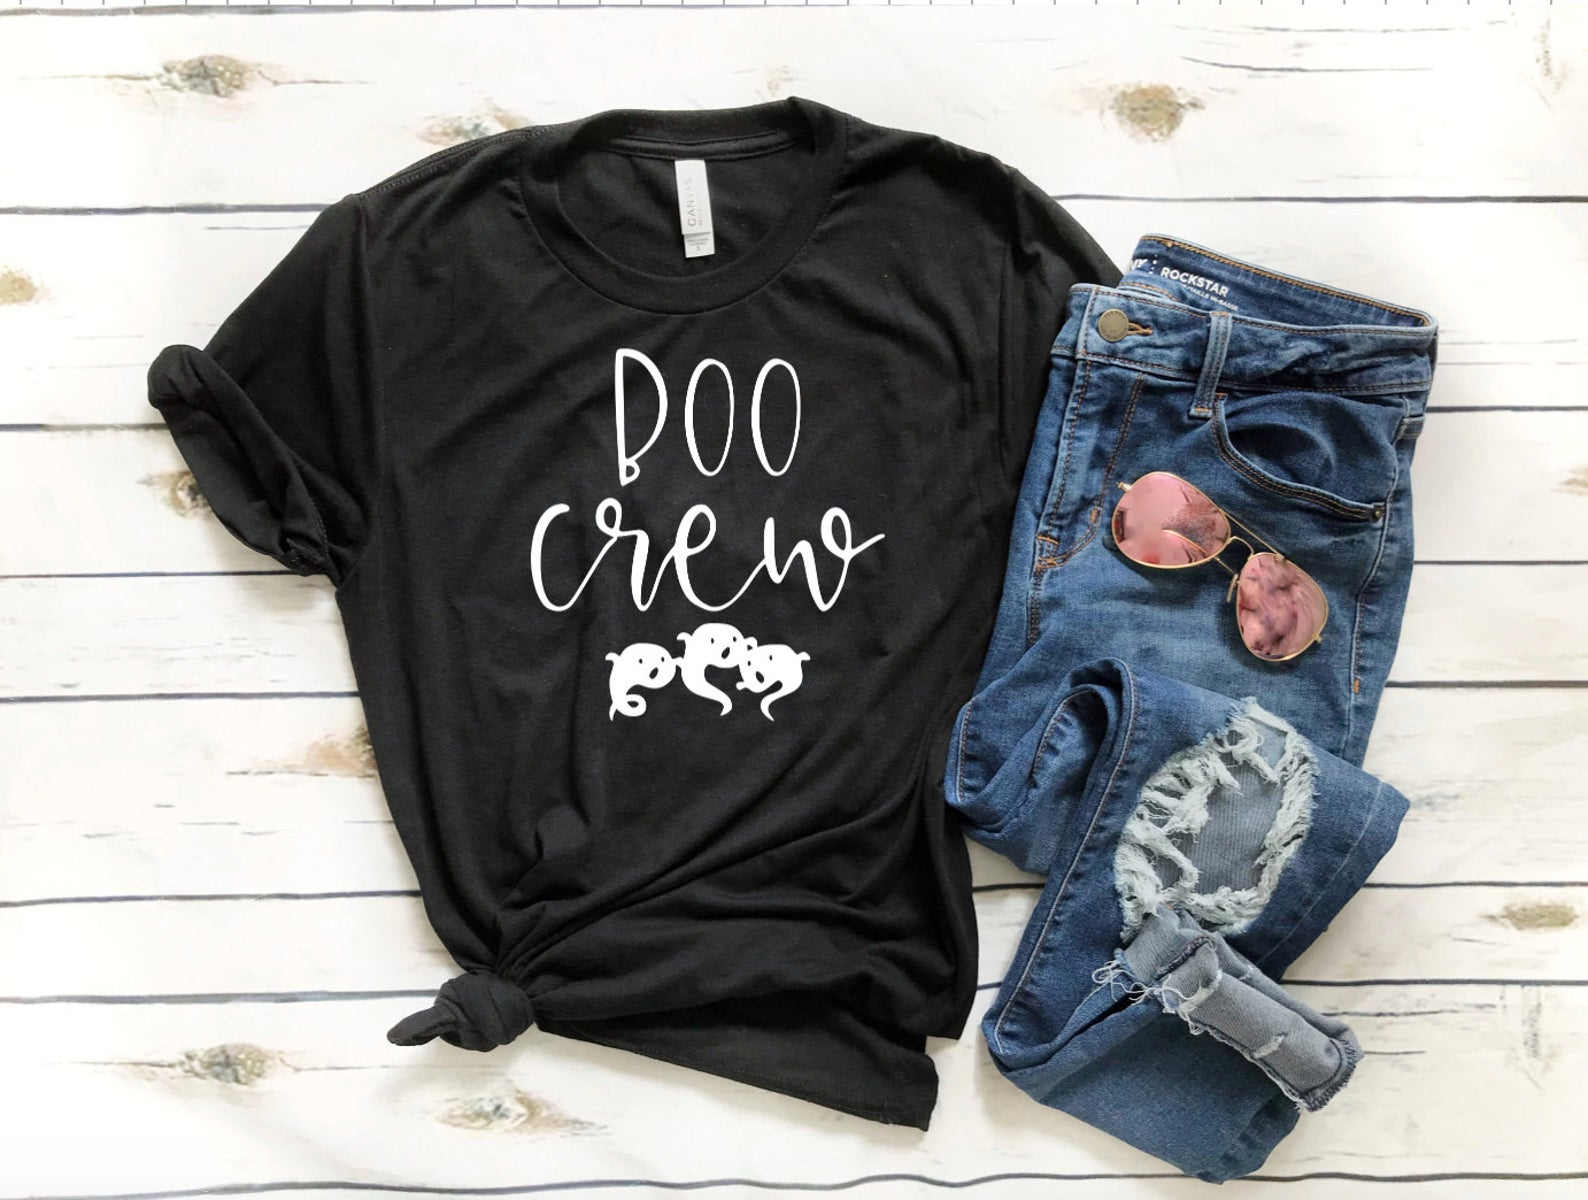 Boo Crew Halloween T-Shirt - Matching Halloween T-shirts - Funny Halloween Shirt - Teacher Halloween Shirt - Custom Halloween Shirt